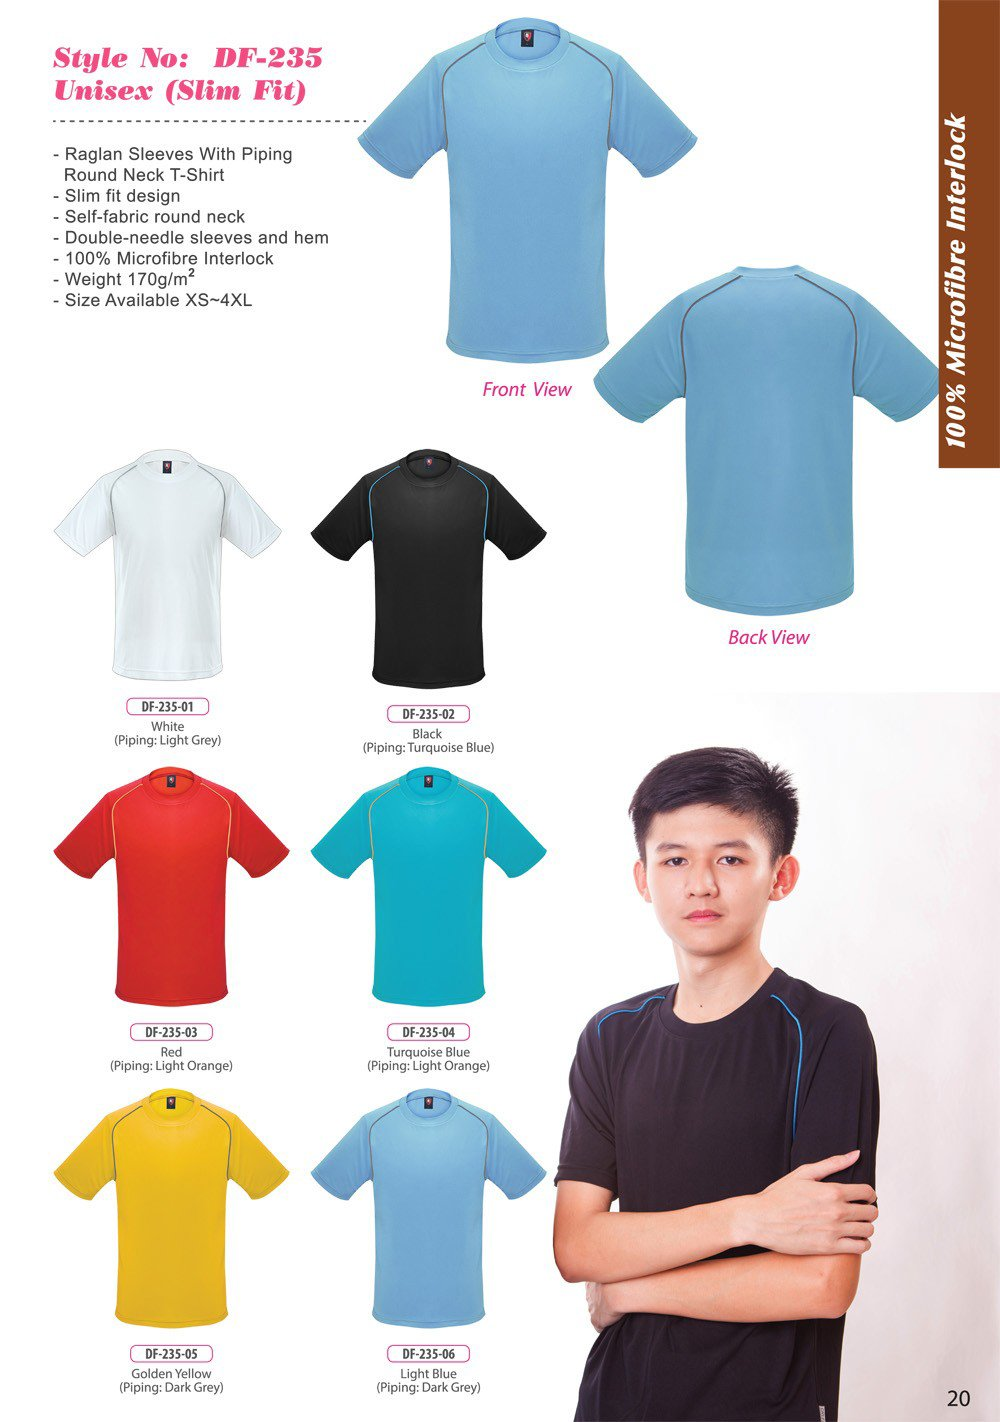 ID-DF 235 Unisex (Slim Fit) + Colors